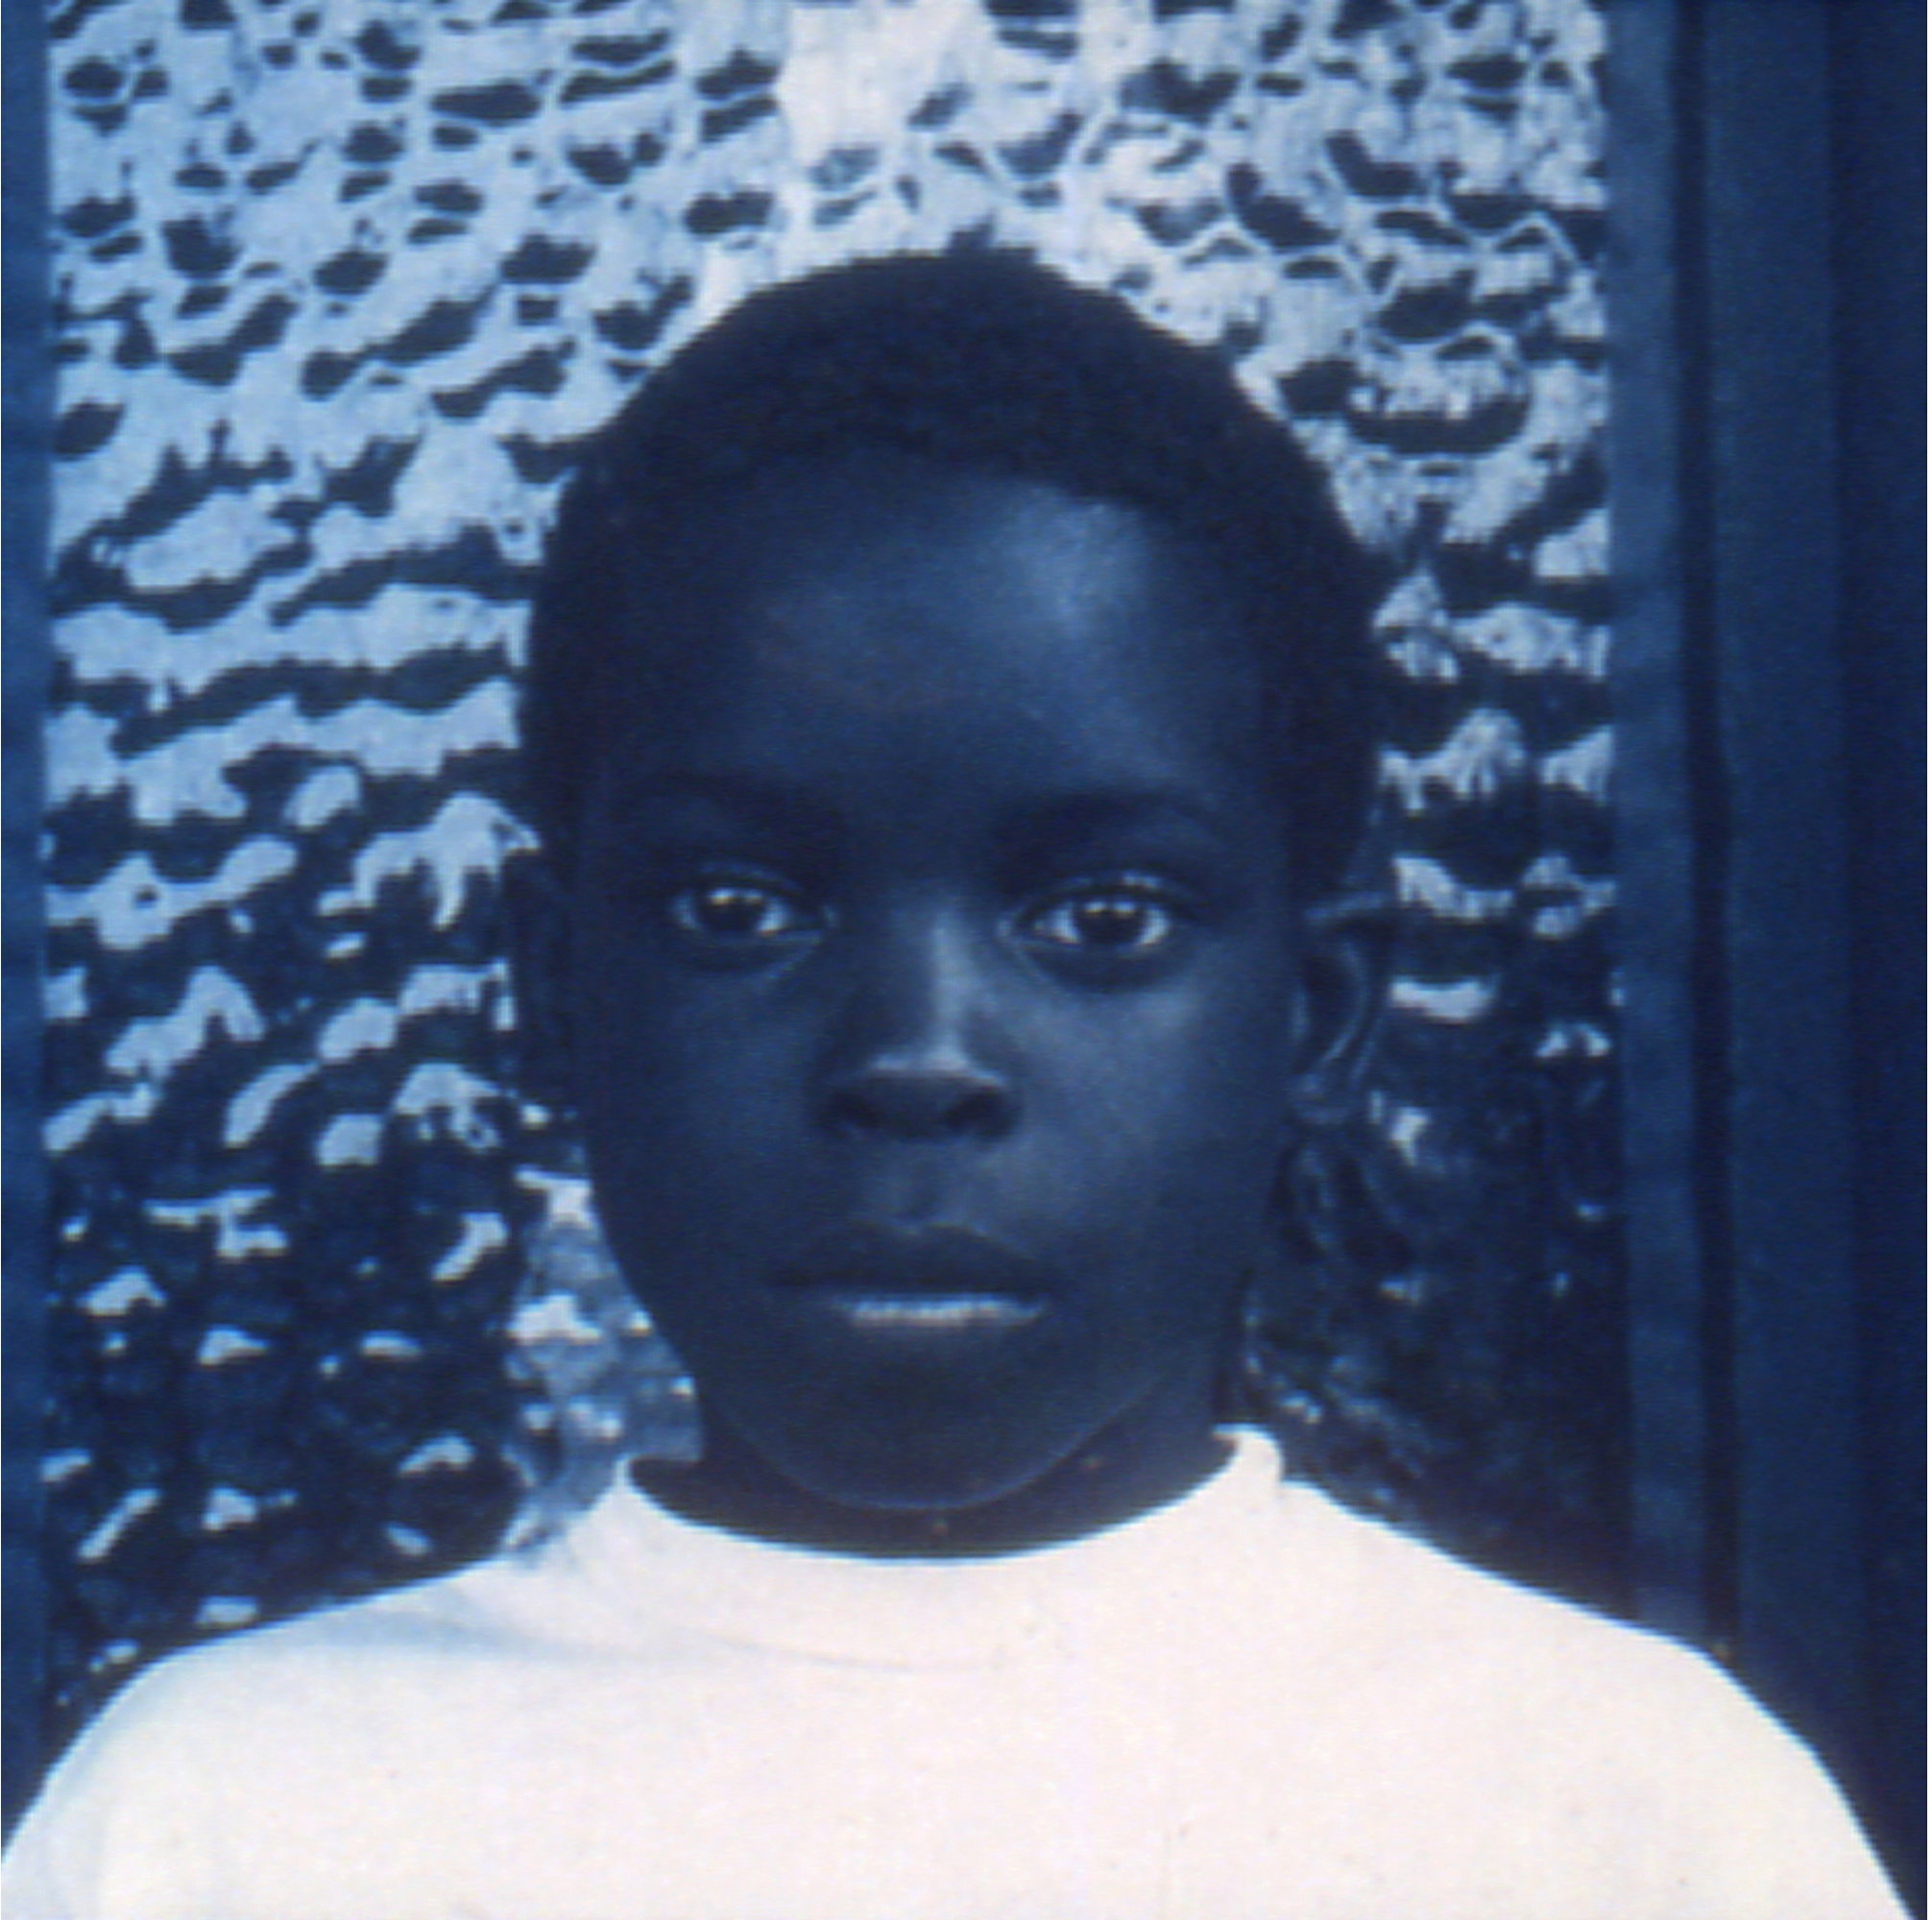 Blue Black Boy, 1997